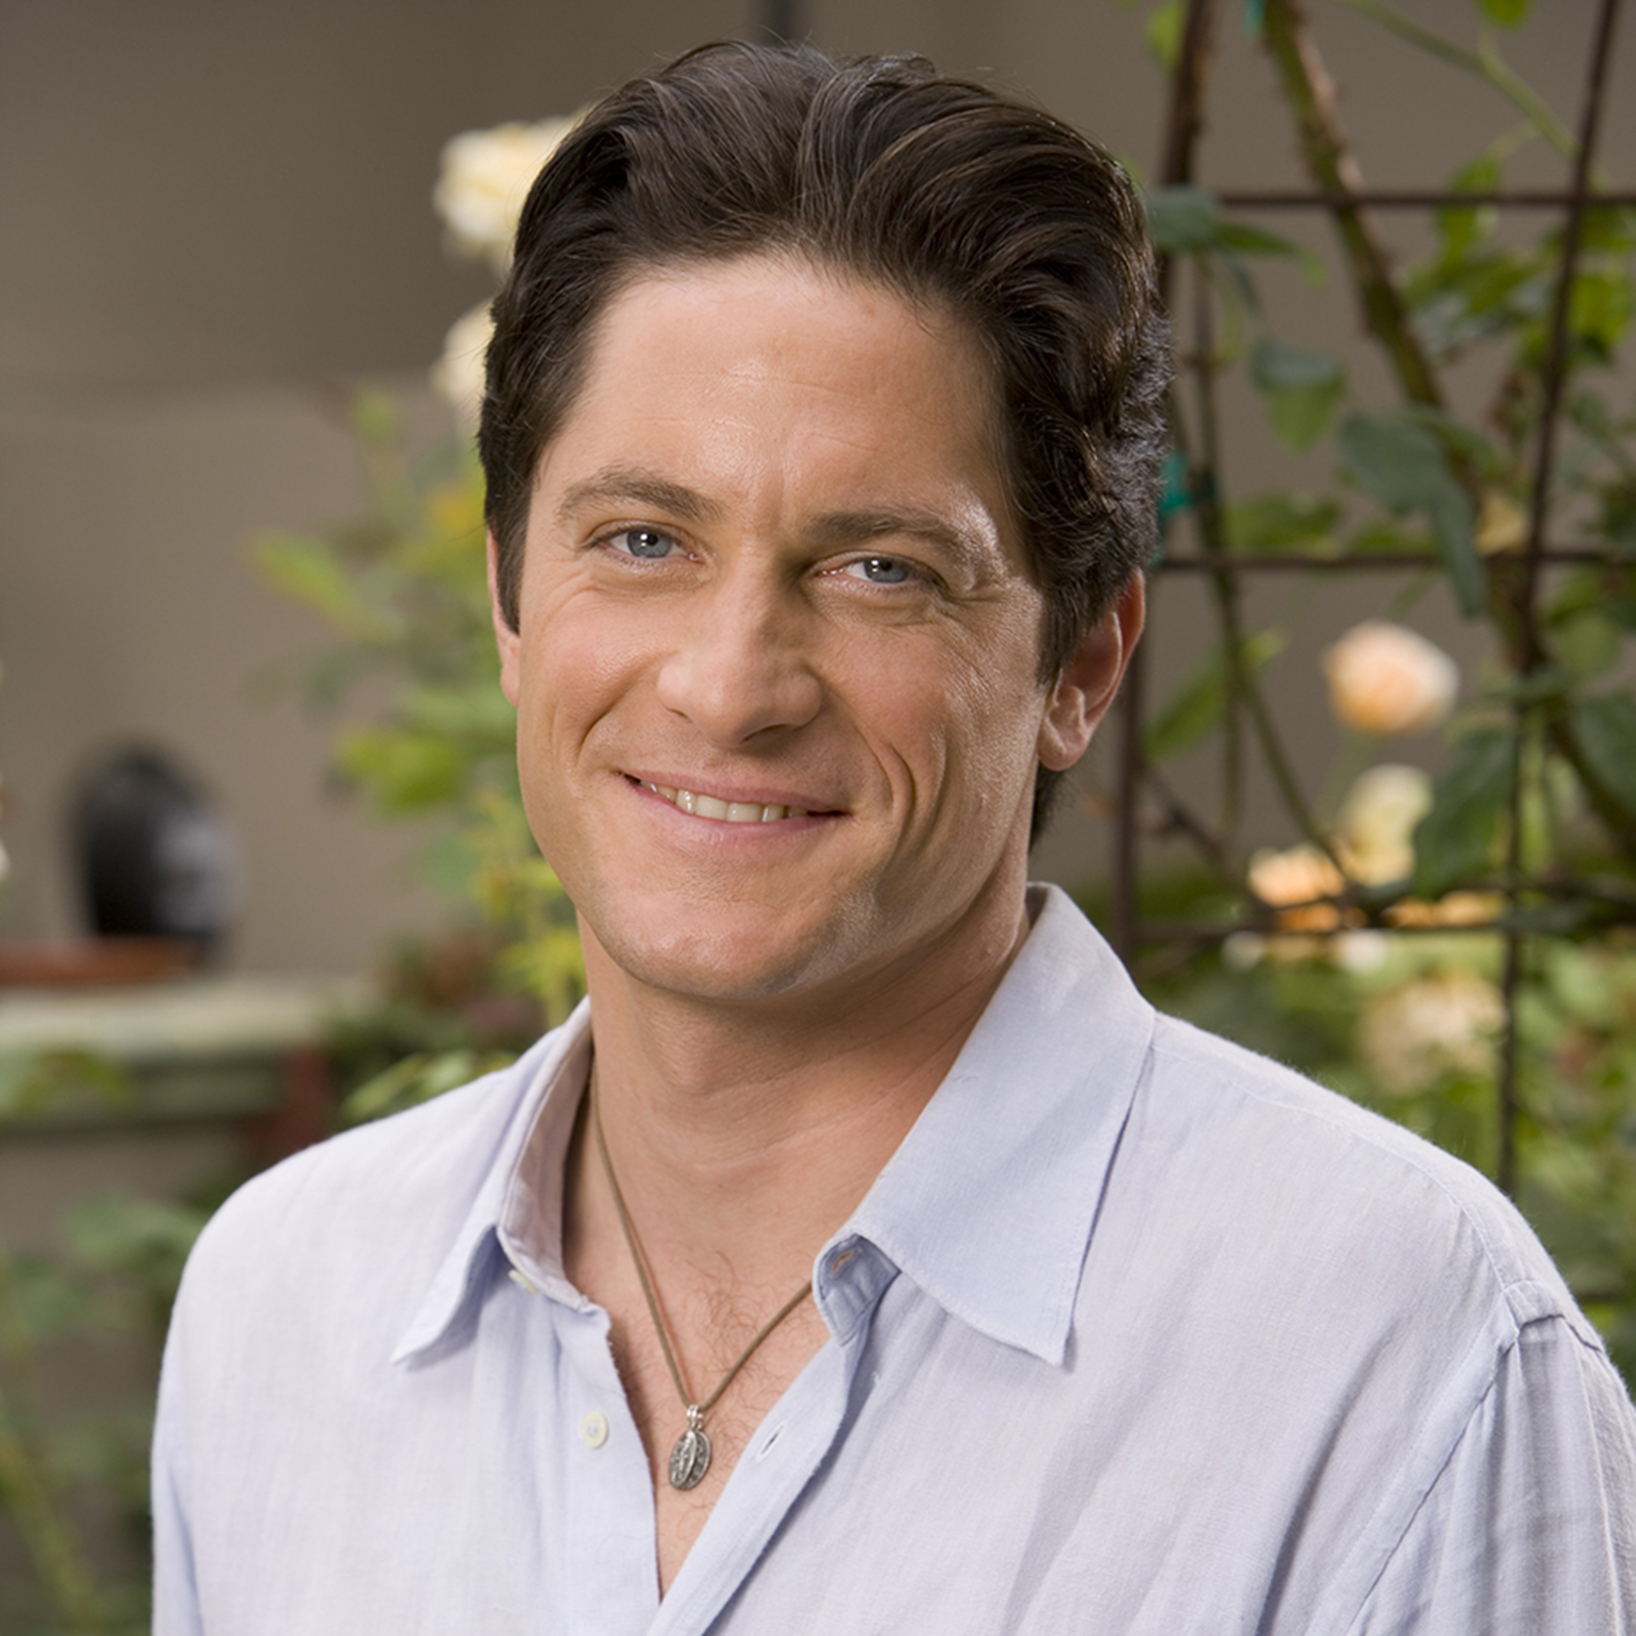 Actor/writer David Conrad's long journey home, identity of place, and the key role artists play in shaping our future (S01 EP03)